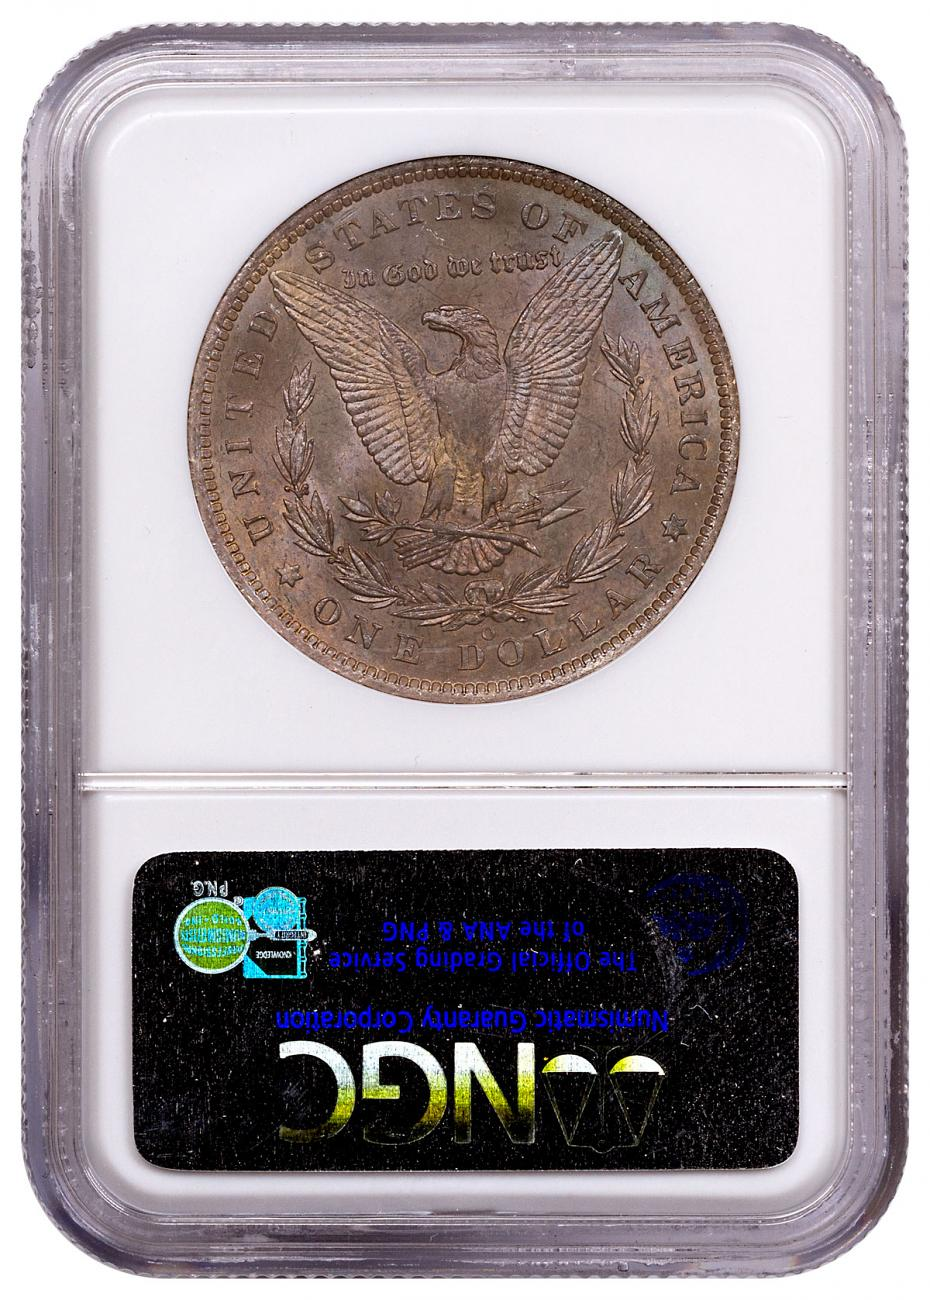 1885-O Silver Morgan Dollar From the Great Montana Collection NGC MS63 Toned CPCR 2128